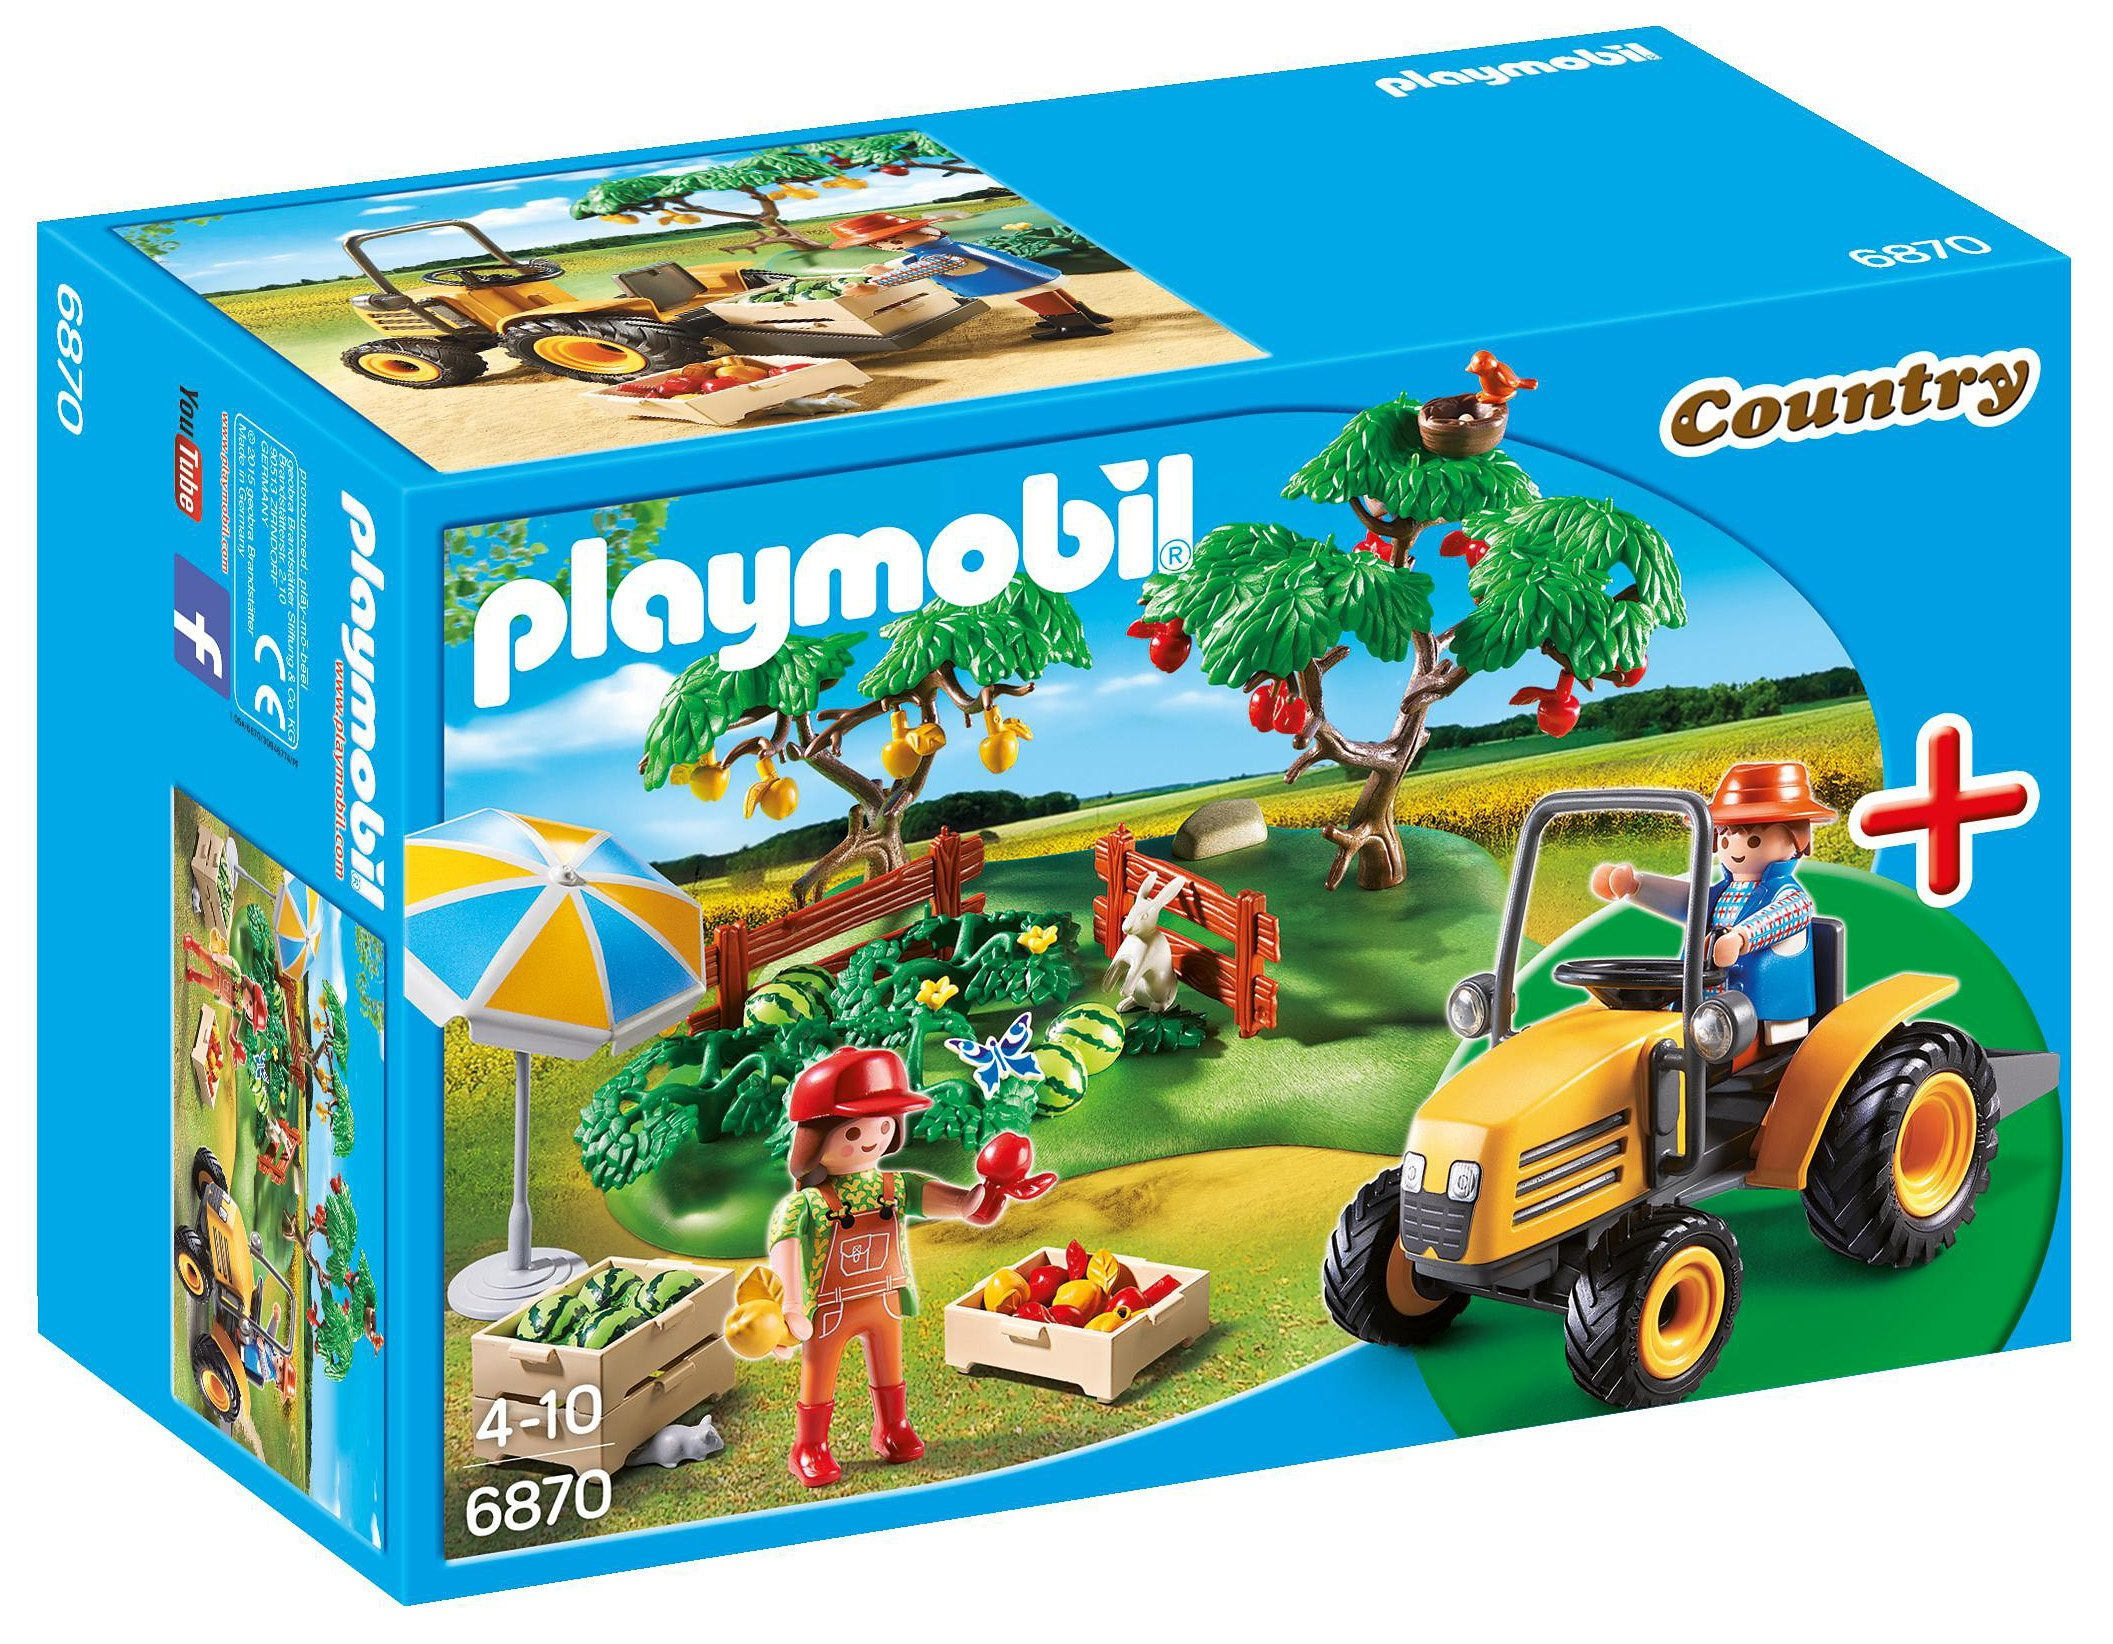 Playmobil® Starterset Obsternte (6870), »Country«